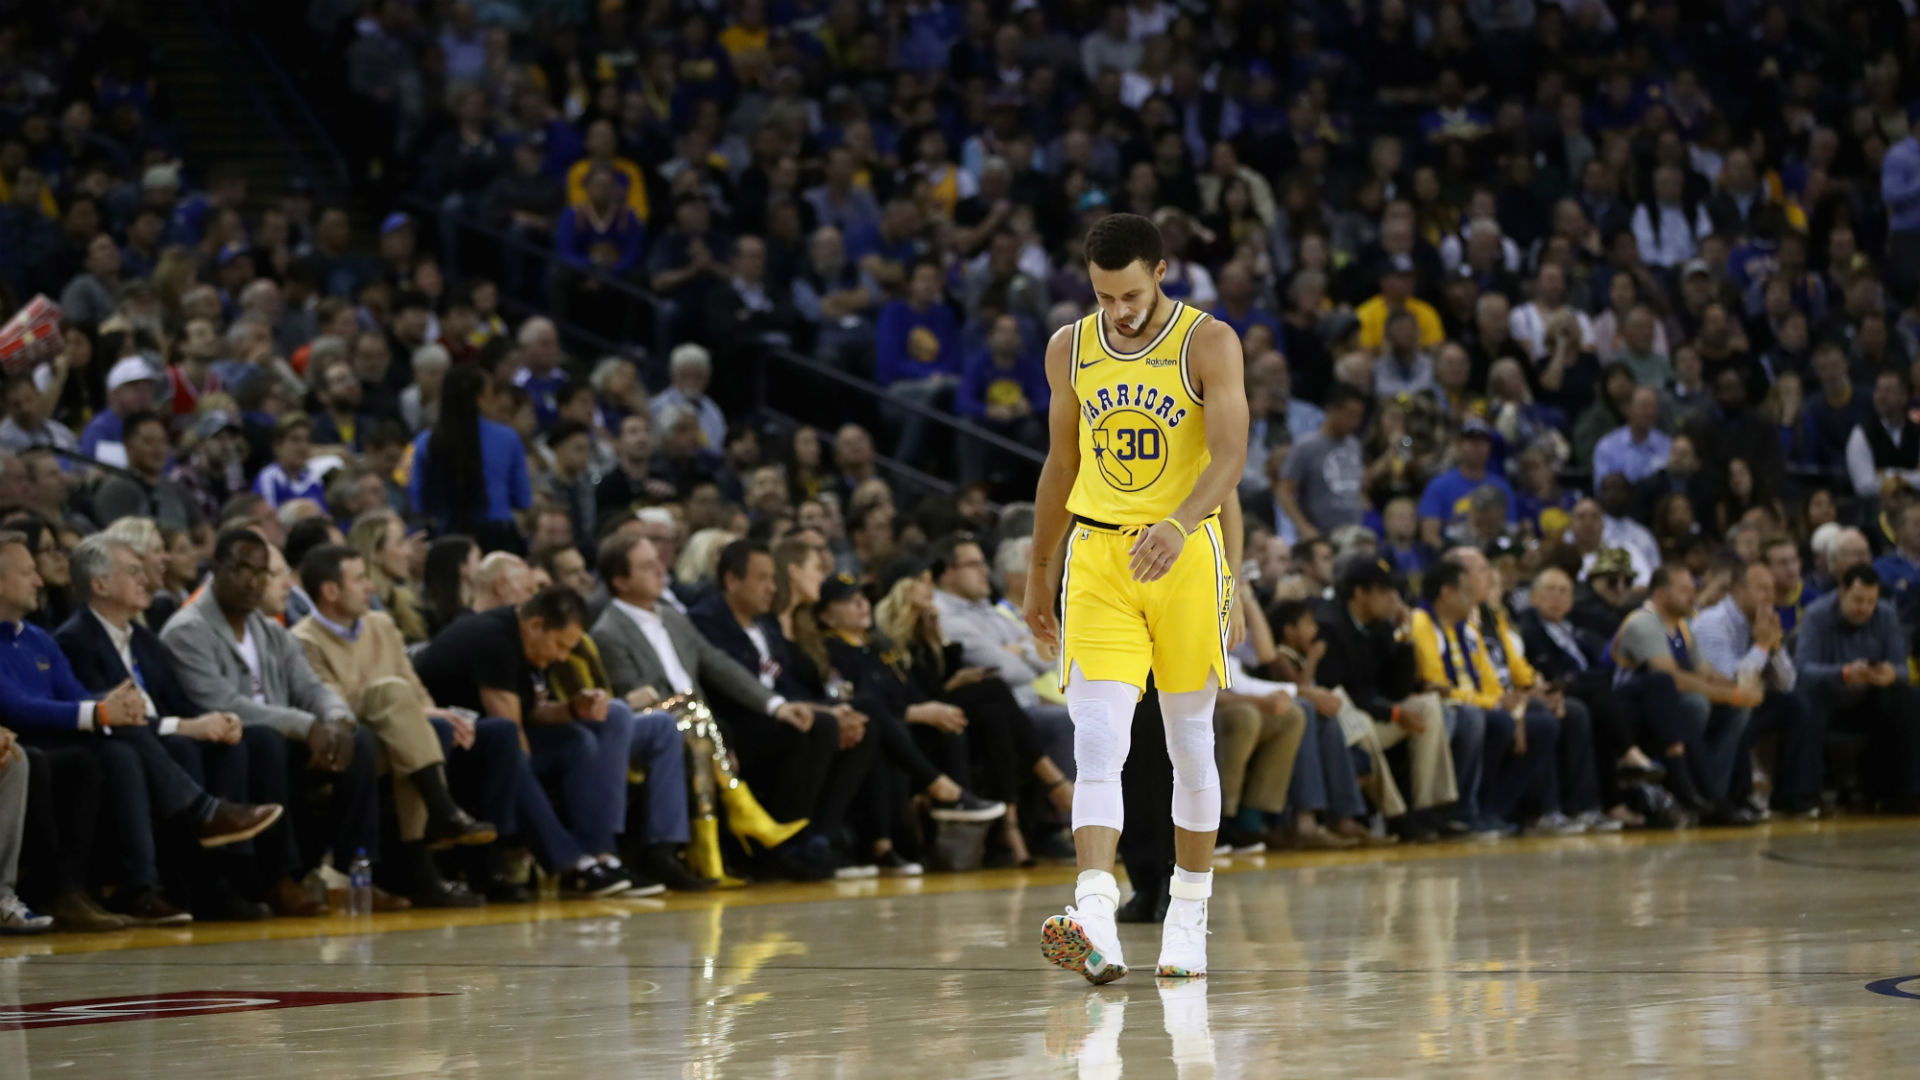 Stephen Curry (groin) due for MRI after exiting Warriors' first home loss